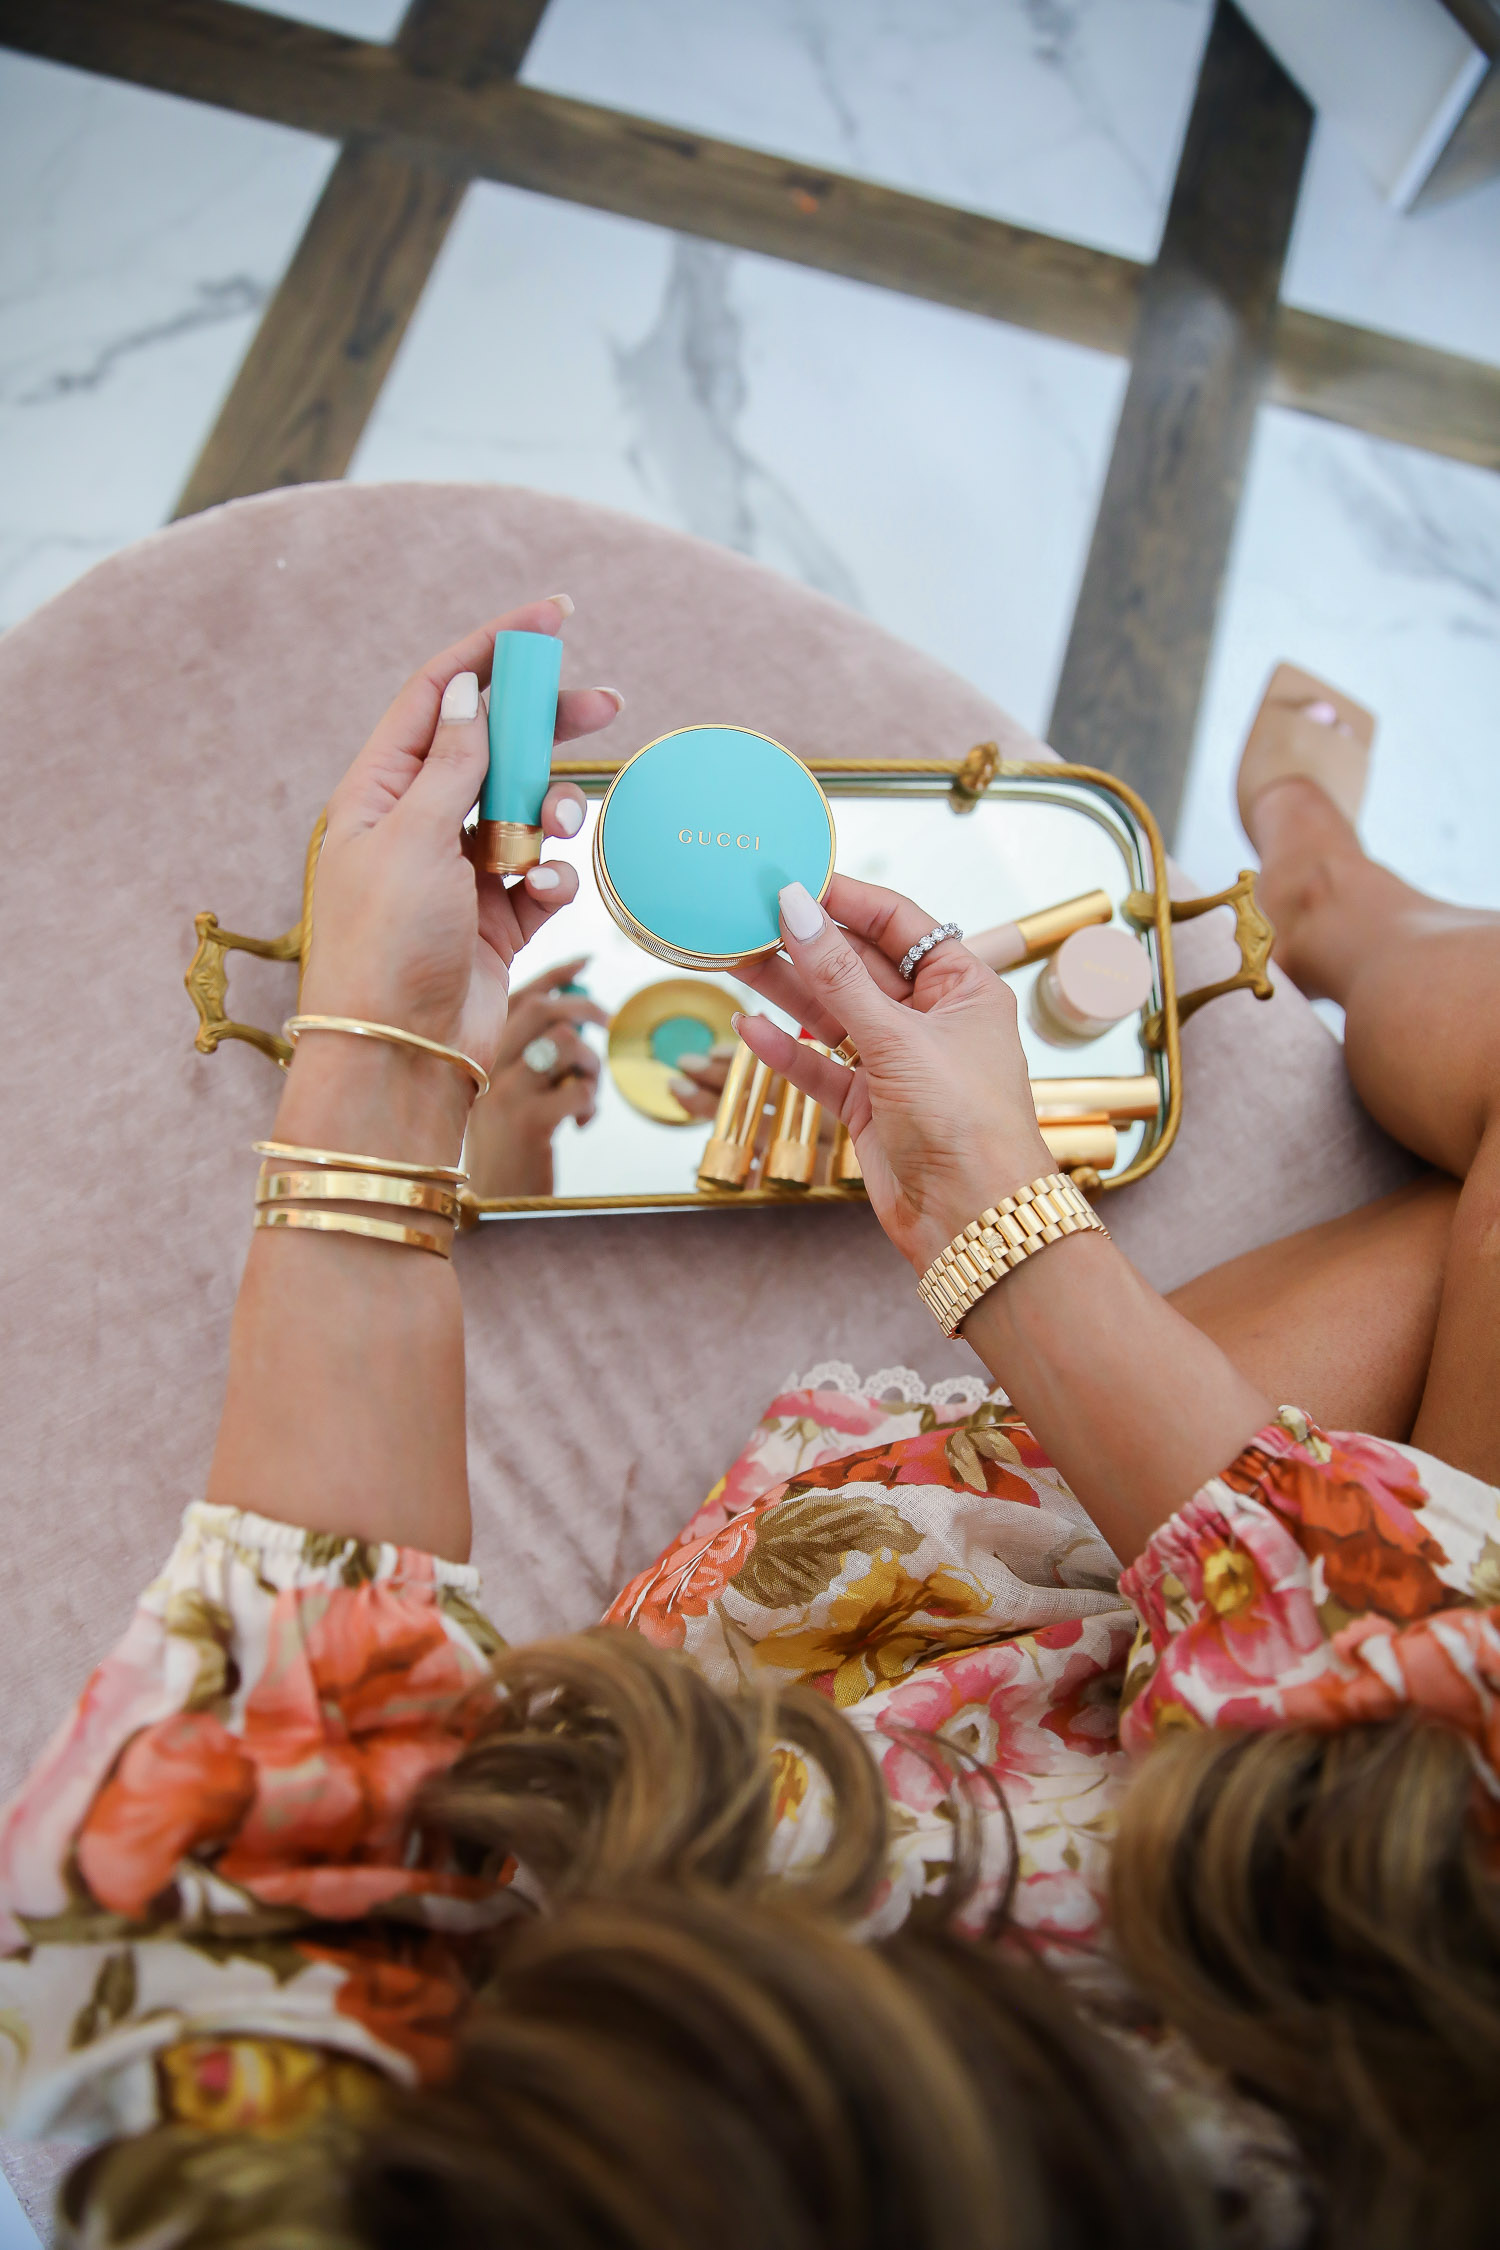 Gucci bronzer review by popular US beauty blog, The Sweetest Thing: image of Emily Gemma wearing a floral romper and sitting on a tuft velvet ottoman while holding some Gucci Poudre De Beauté Éclat Soleil Bronzing Powder and Gucci lipstick.